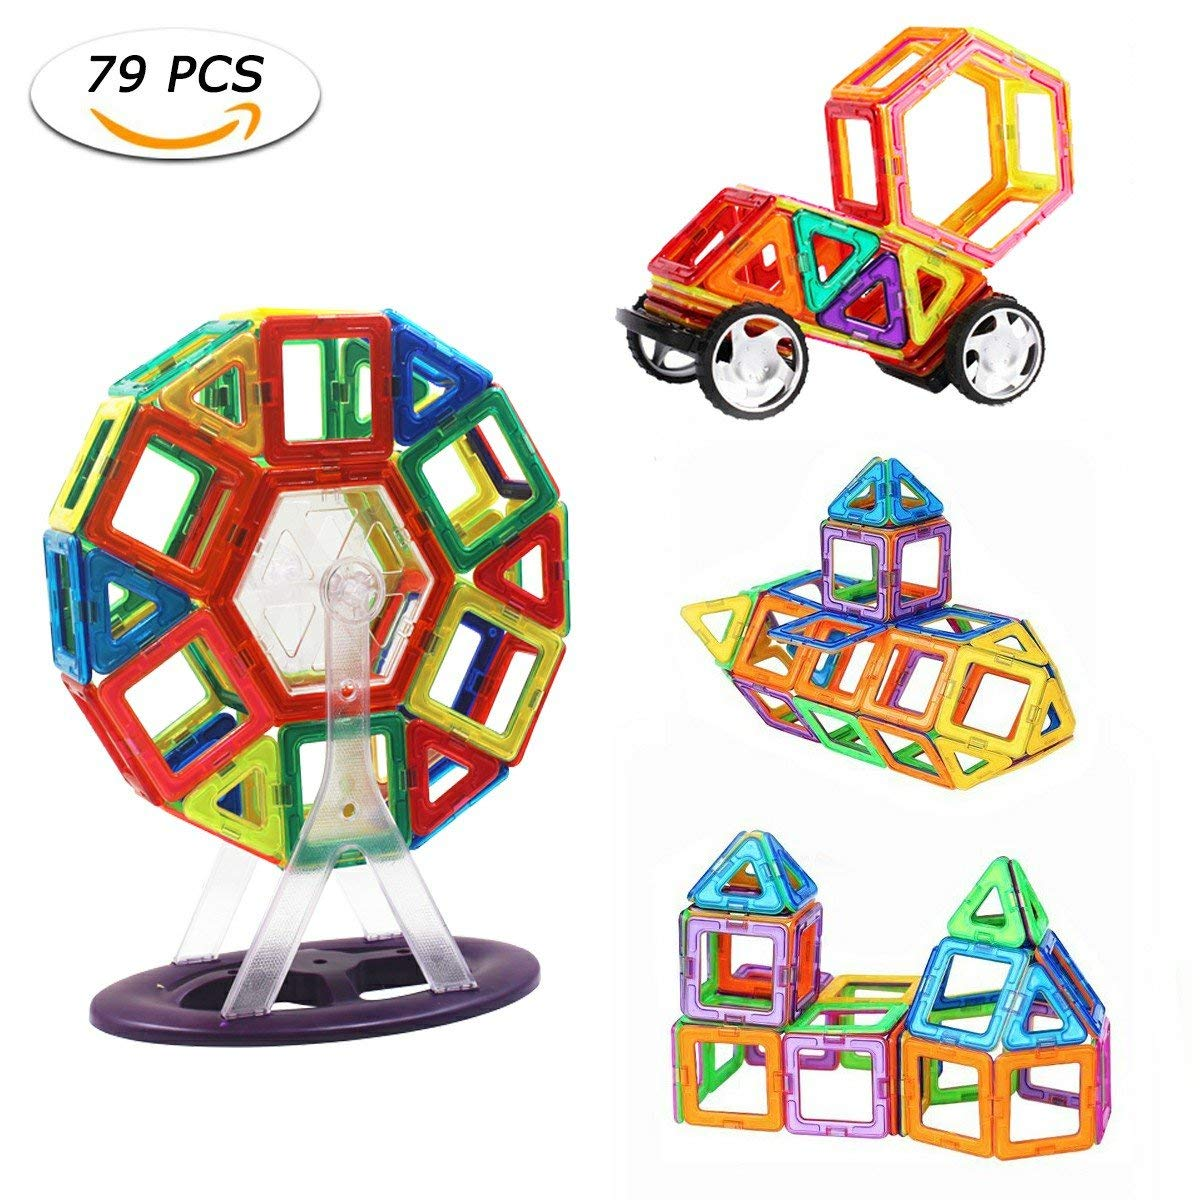 BAZOVE Magnetic Building Blocks, 79Pcs Magnetic Construction Blocks Rainbow Color Enducational Stacking Toys Set with Ferris Wheel & Car Wheel for Kids Toddler Creativity and Fun